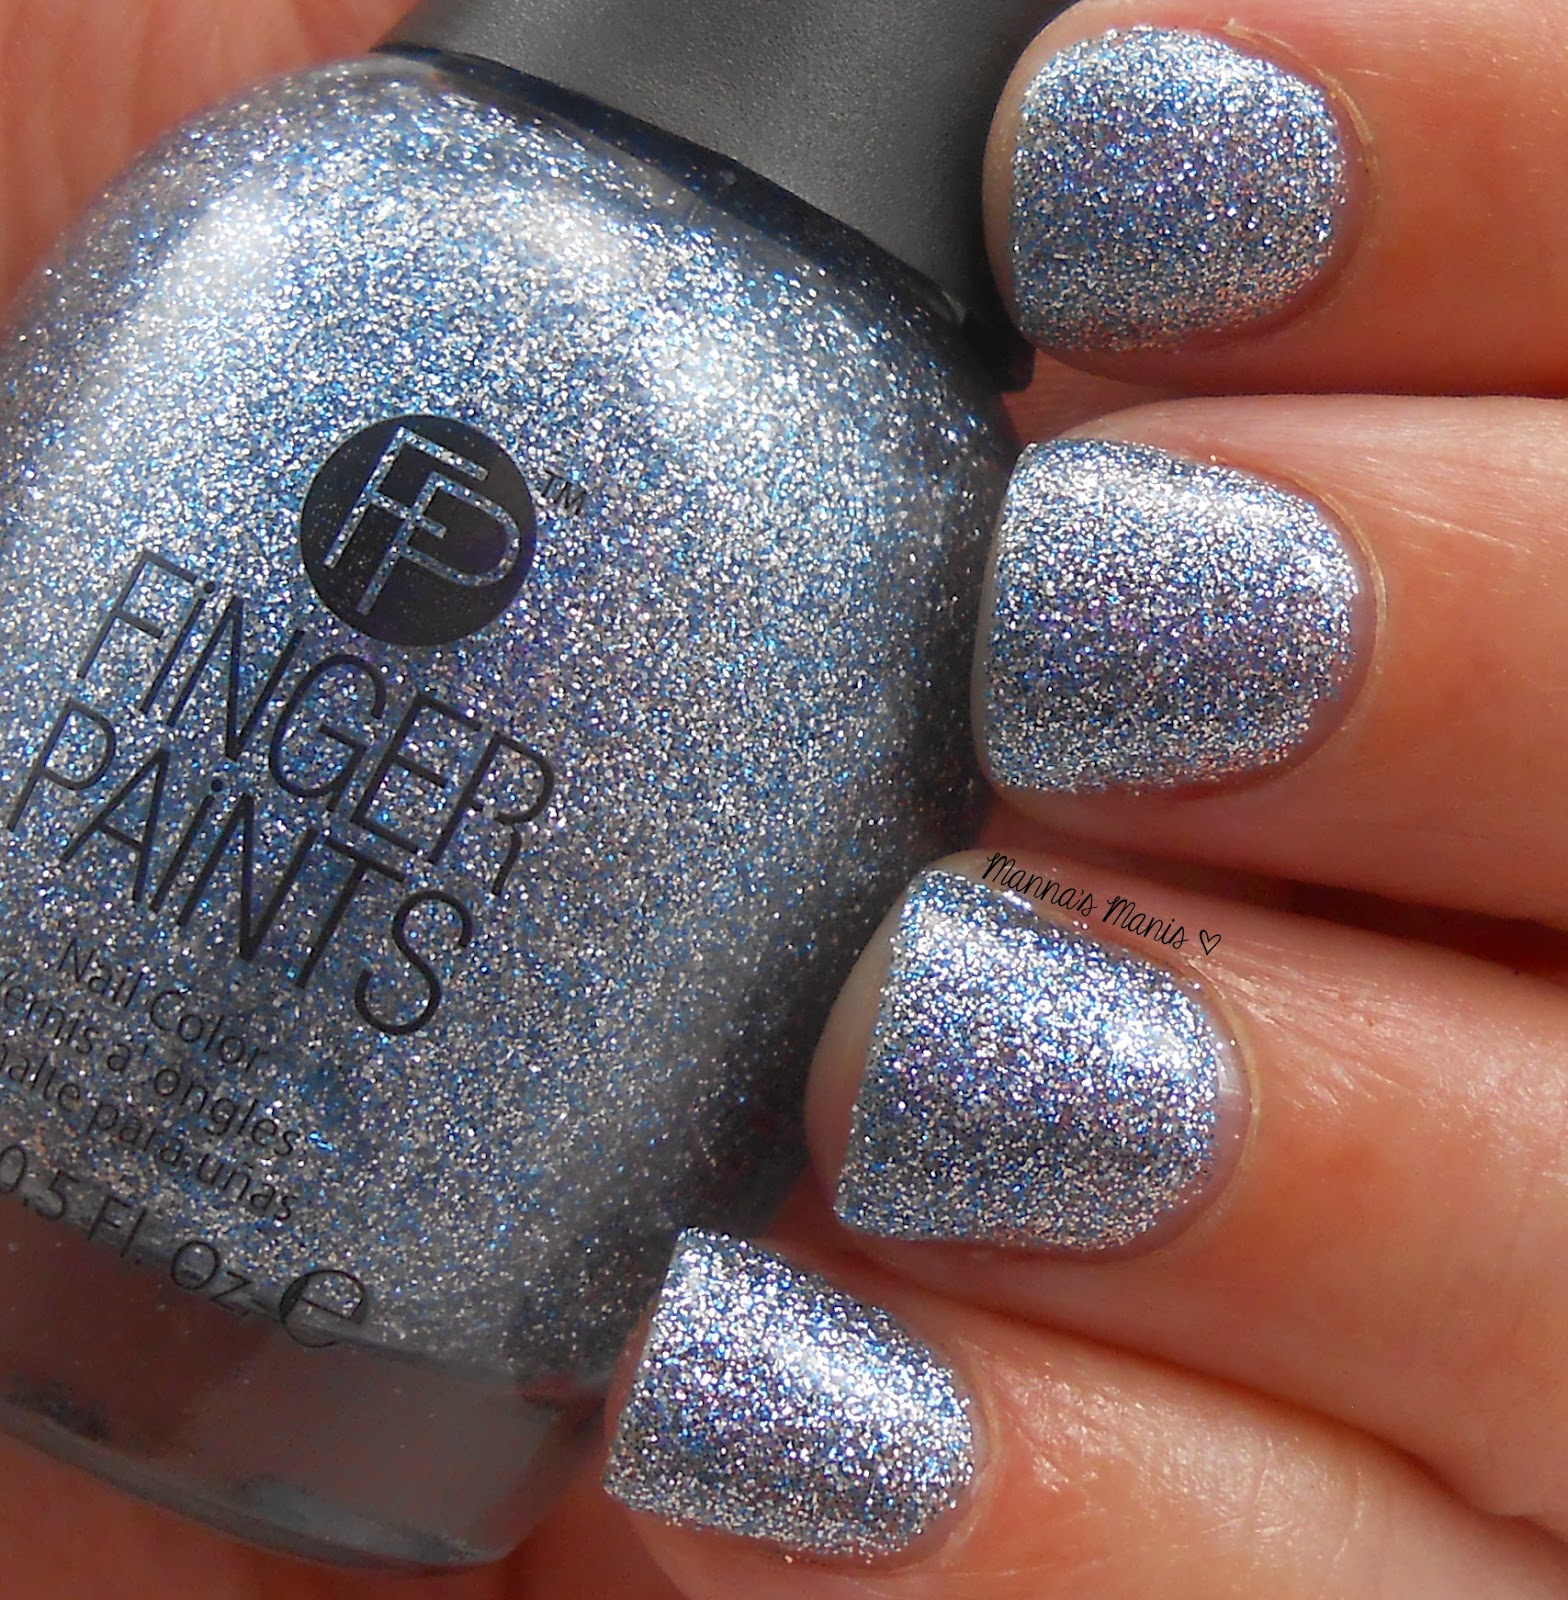 fingerpaints Ho Ho Happy Holidays, a full coverage bluish silver microglitter nail polish